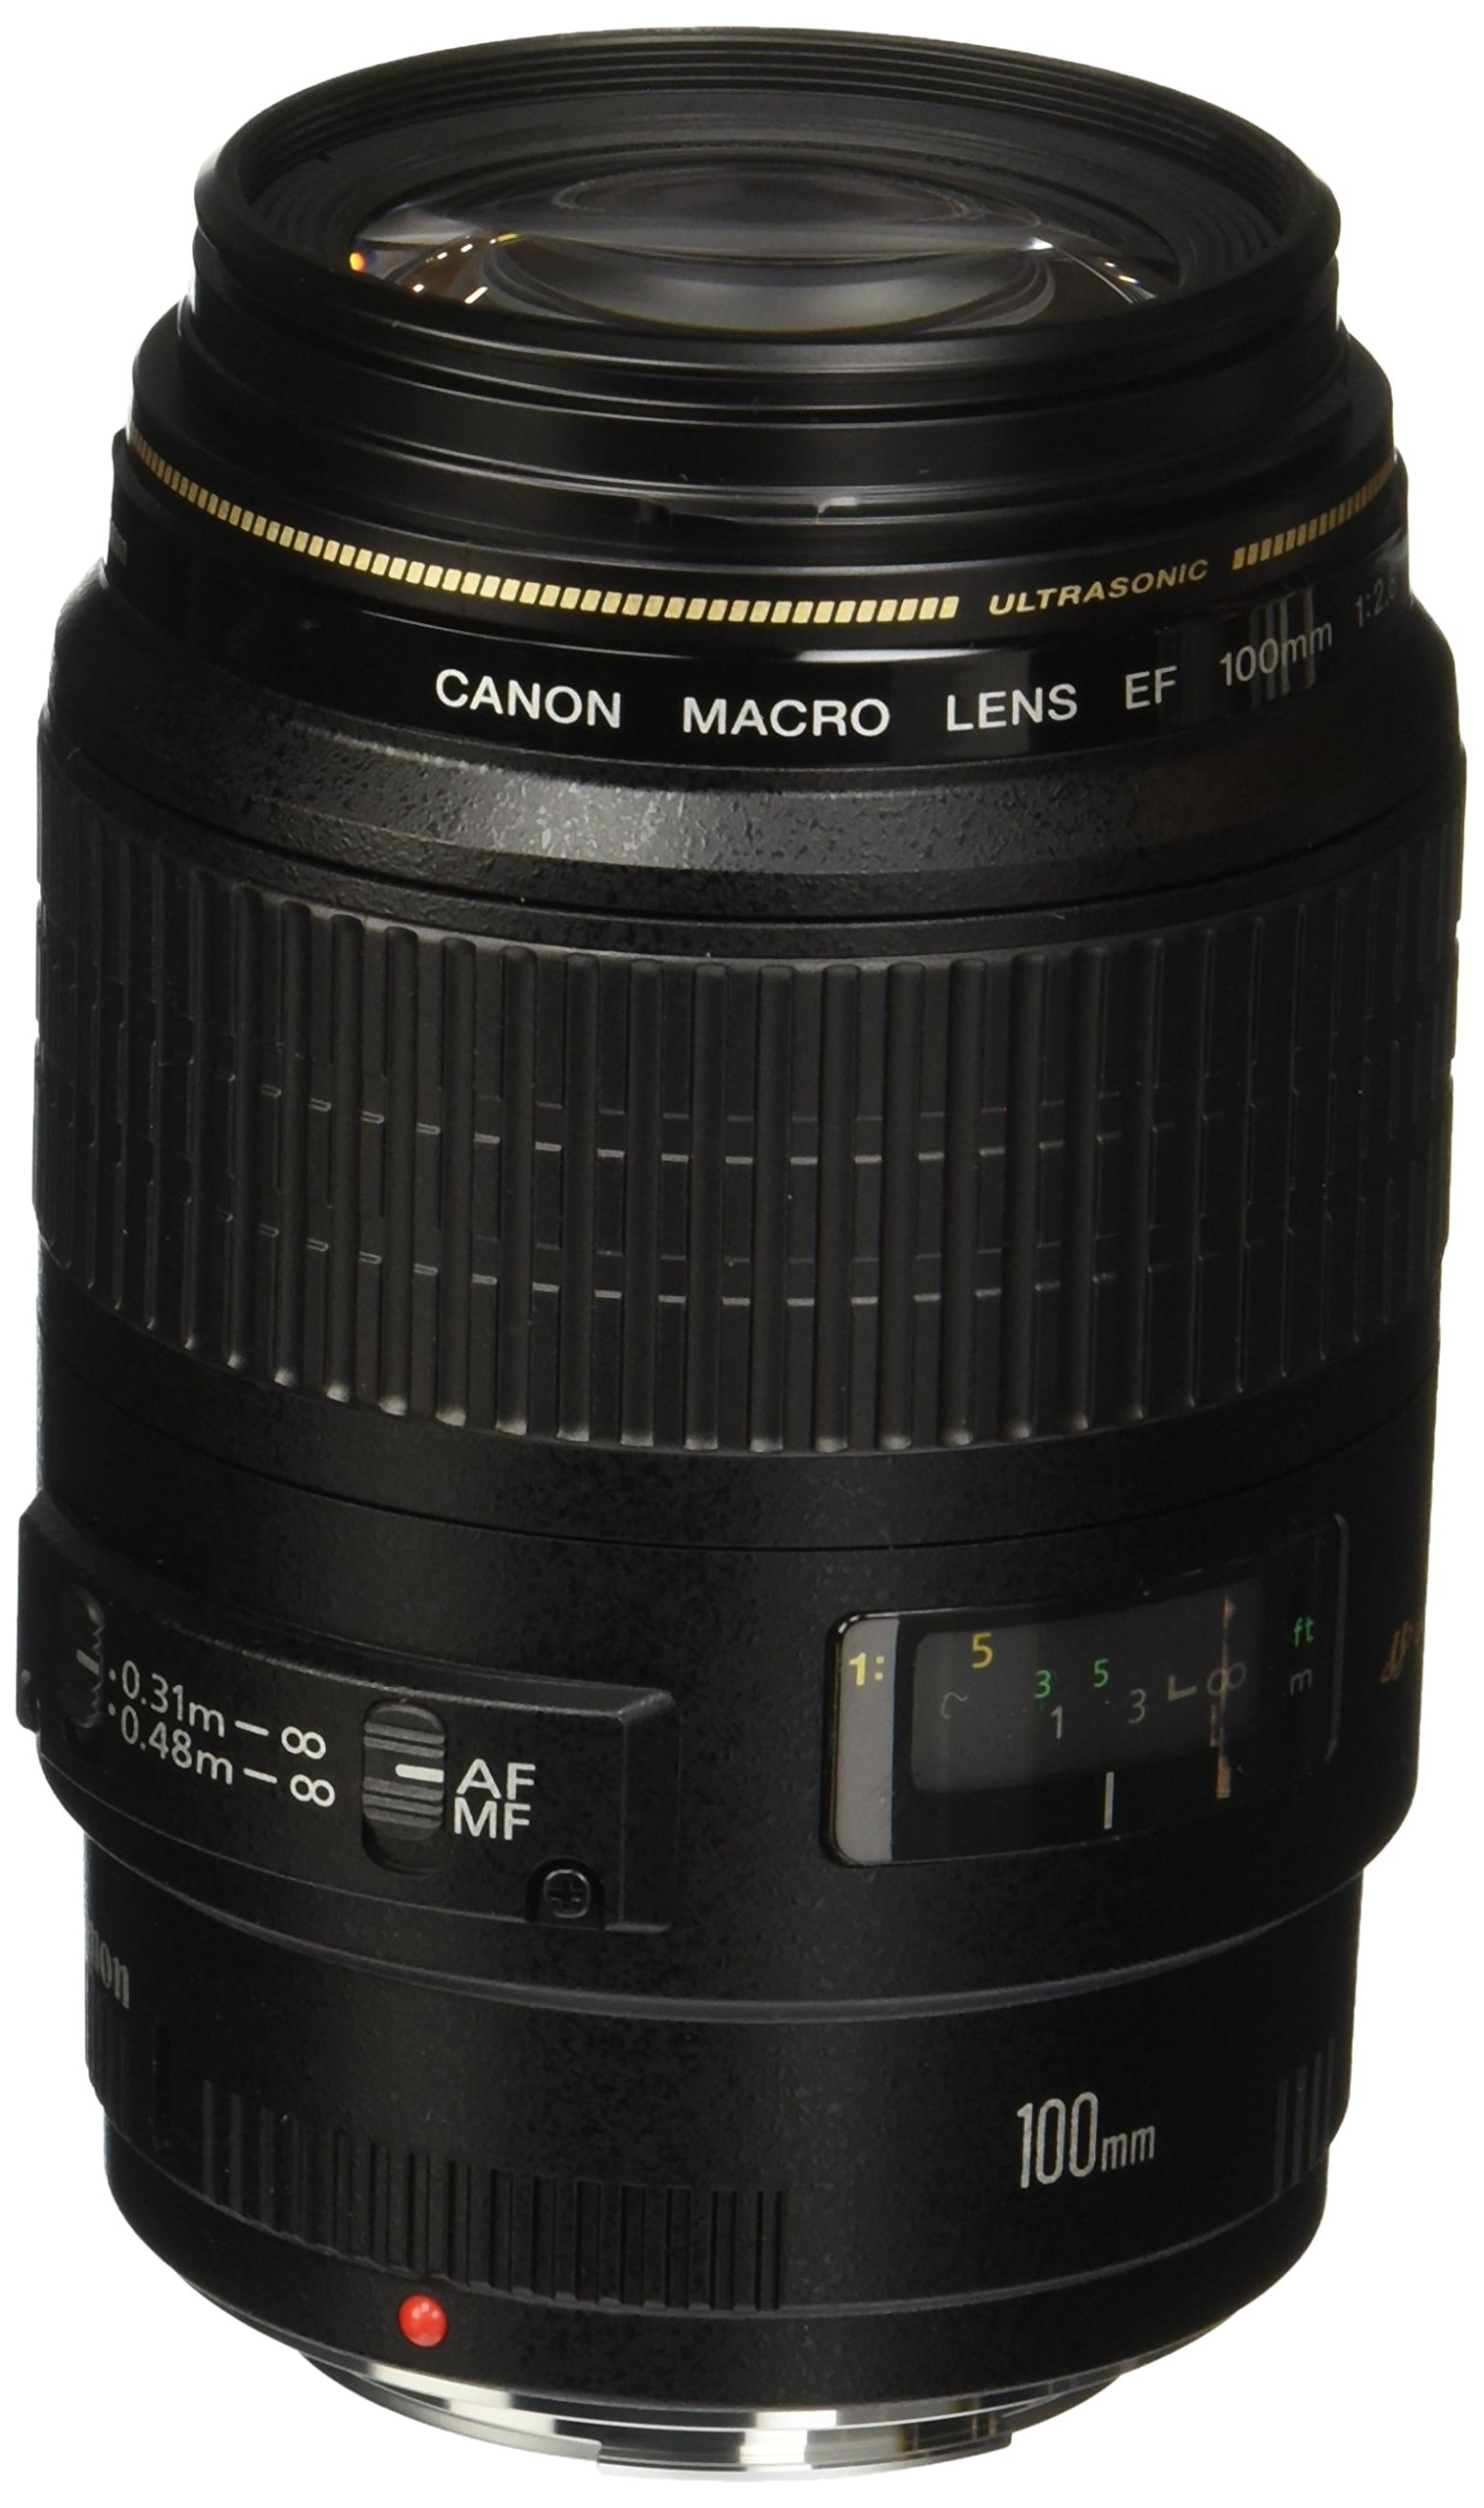 Canon EF 100mm 2.8 Macro USM - camera lenses (8/12, Auto/Manual, 7.5 cm, 24°, 7.9 cm, 5.8 cm)